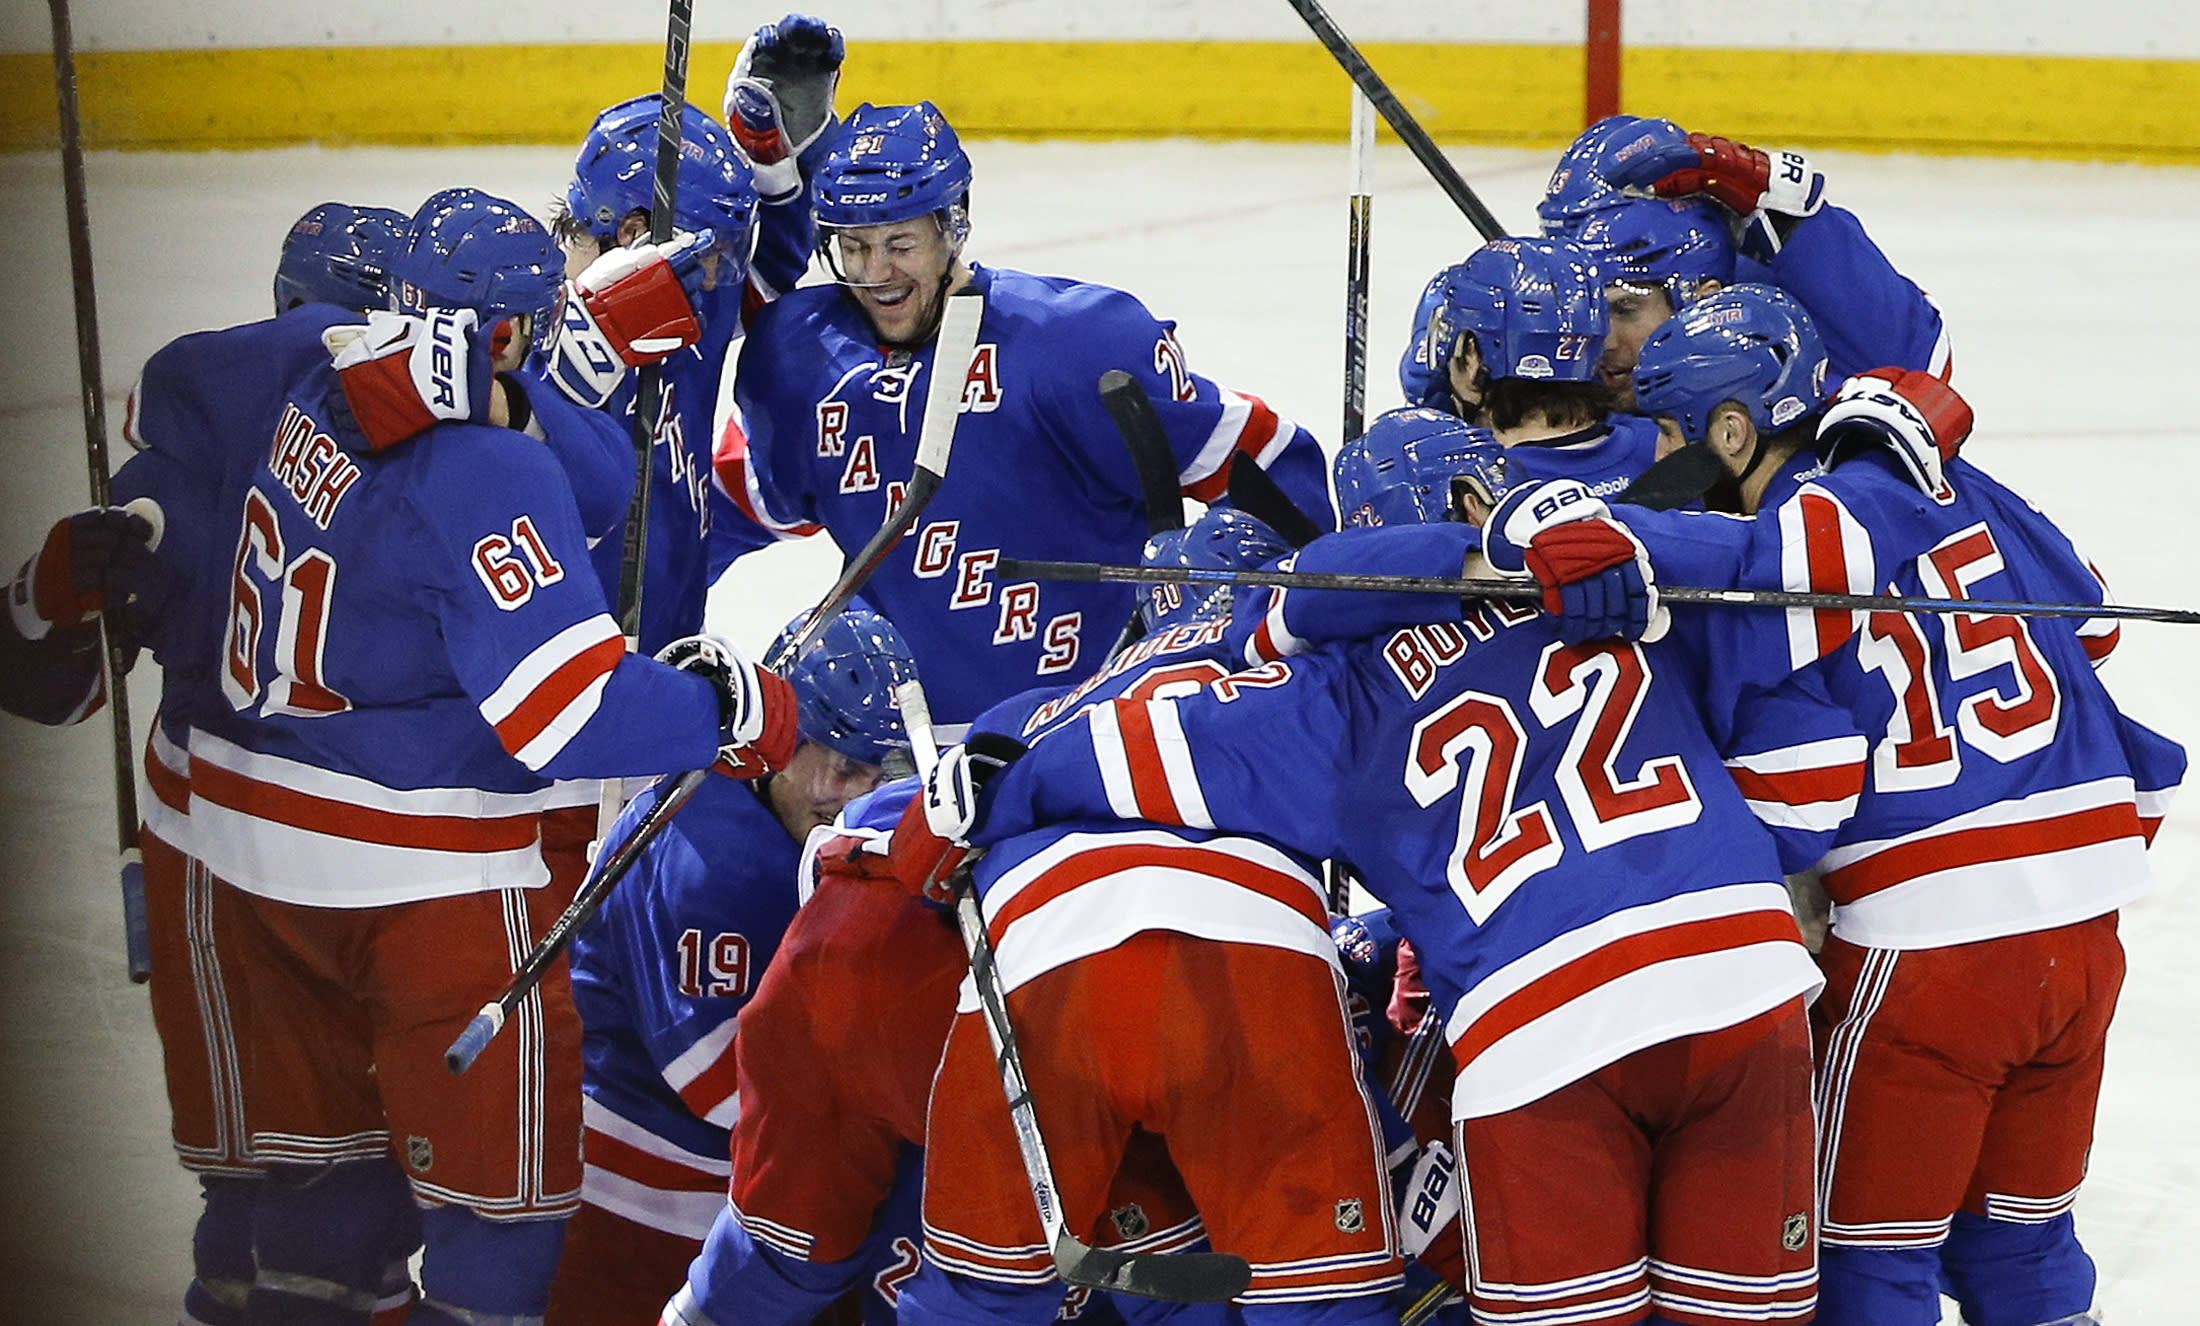 Rangers head to 2nd round, await Capitals or Islanders